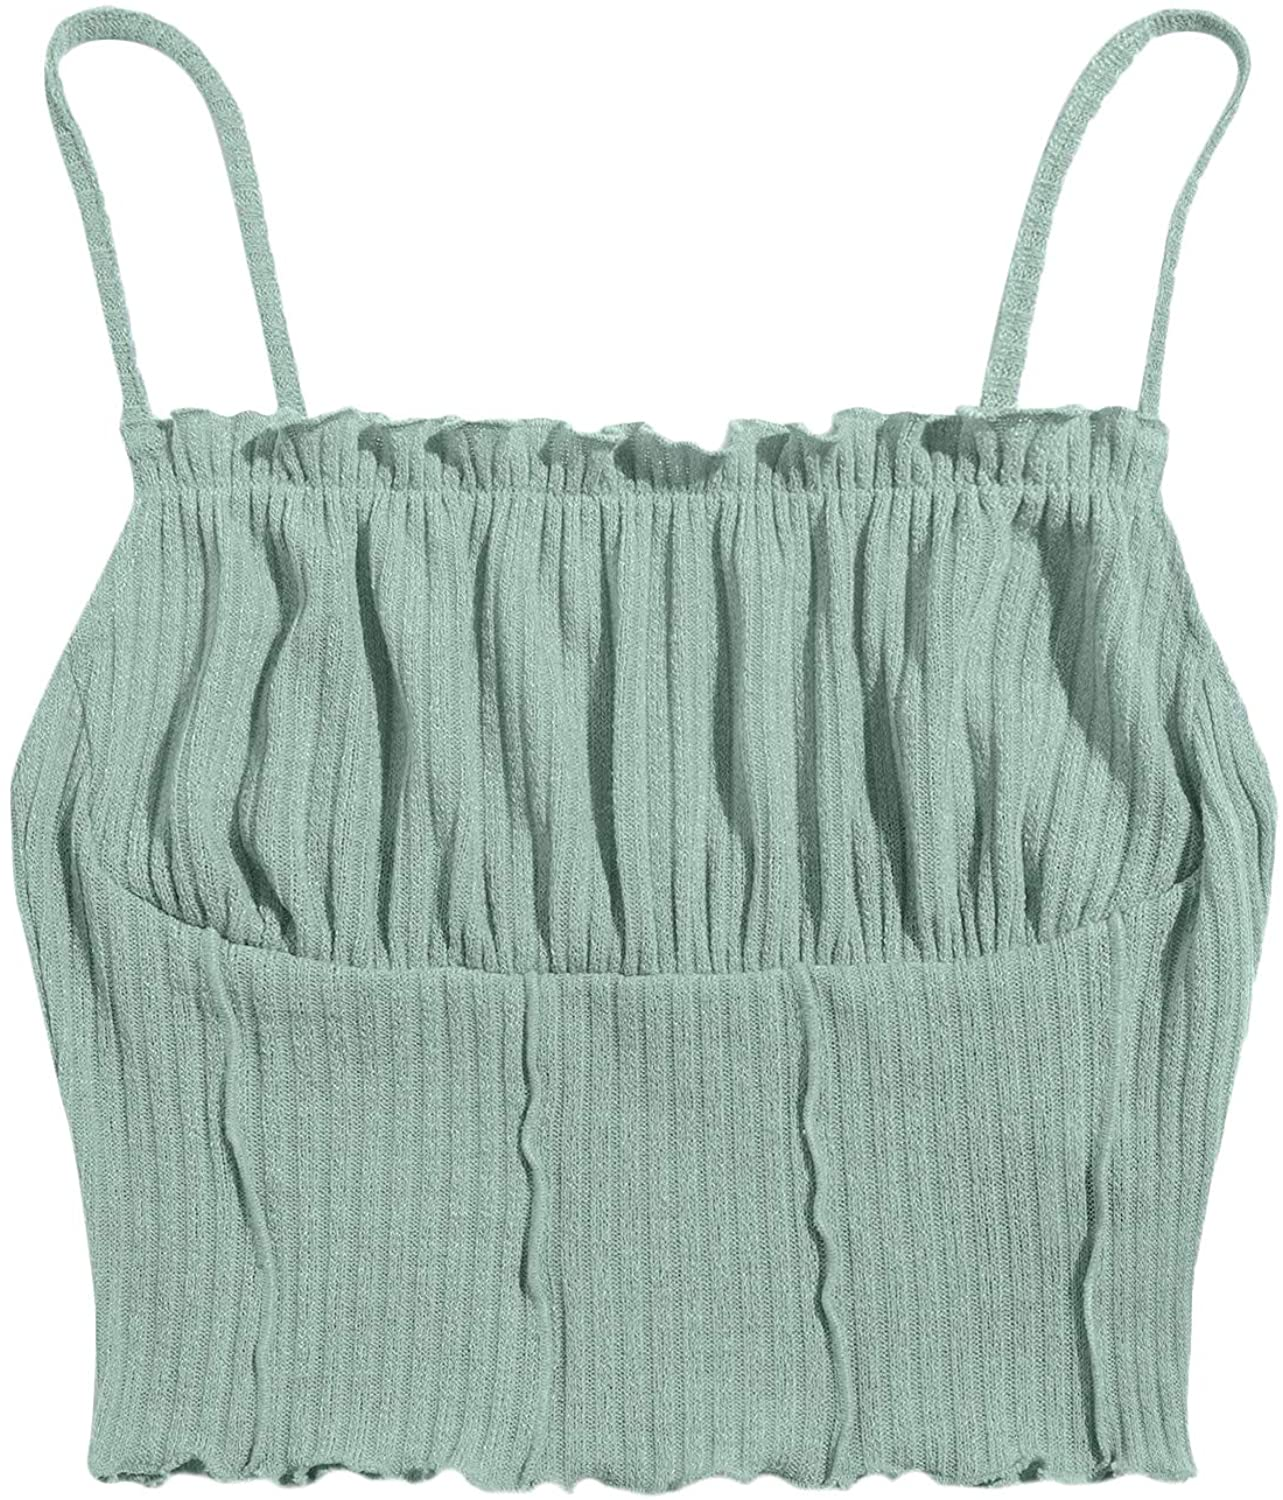 SheIn Women's Ruched Bust Sleeveless Crop Cami Top Frill Trim Rib Knit Camisole